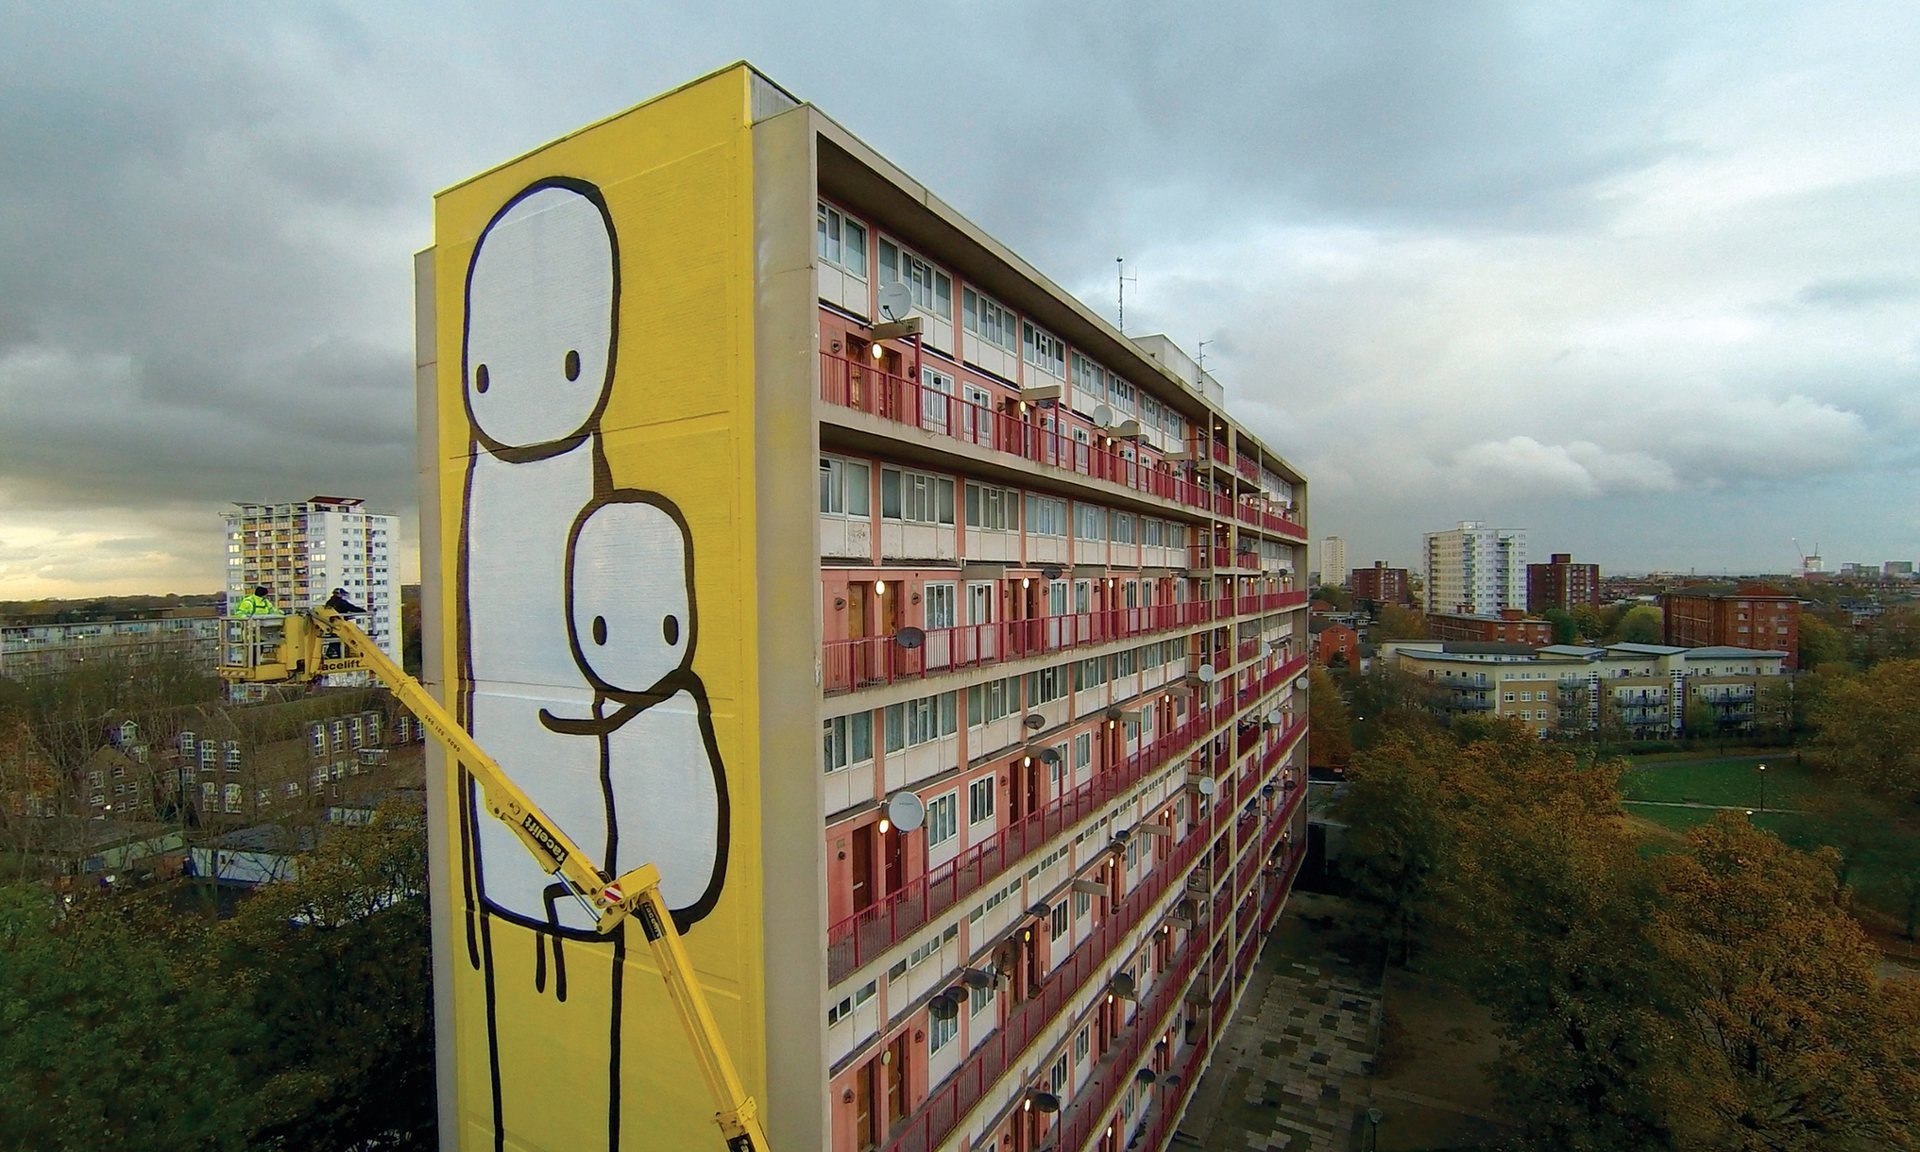 'Big Mother' painting with Stik